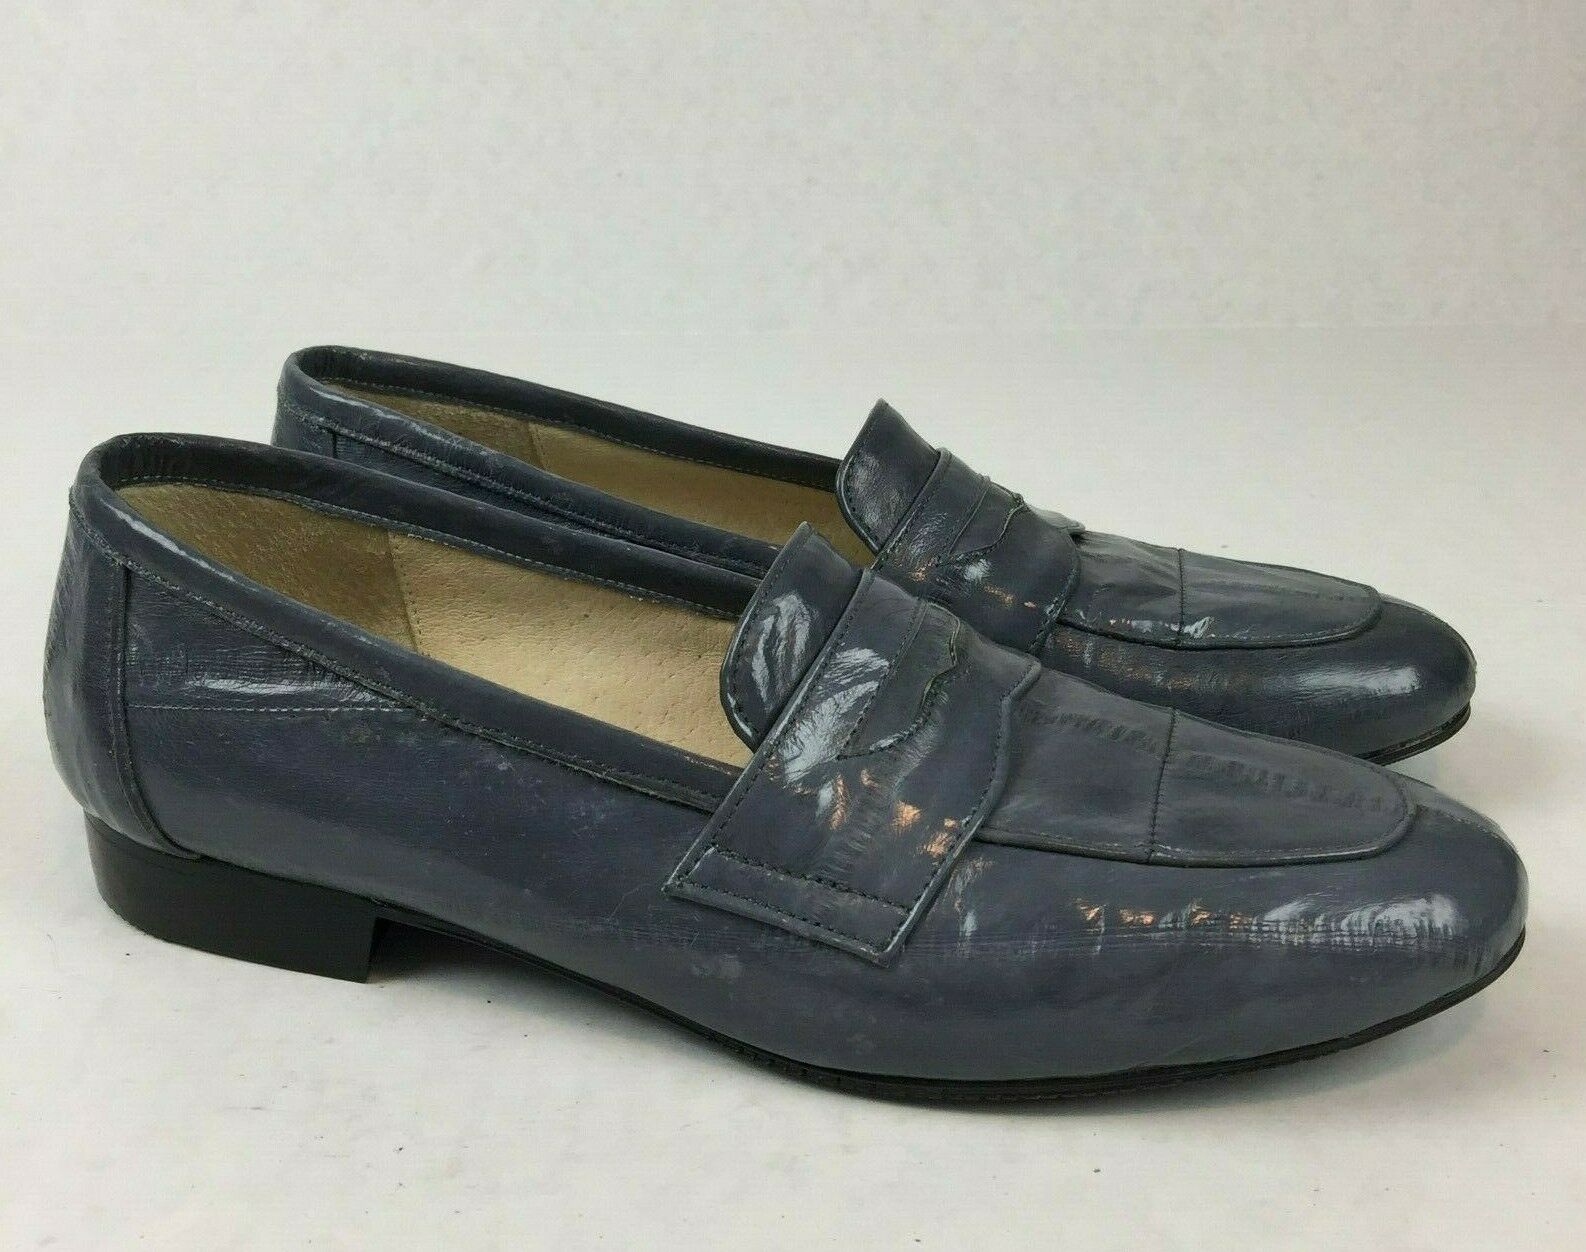 Bostons Hand Made 1179 Womens Leather Reptile Print Slip On Loafer  shoes Sz 7M